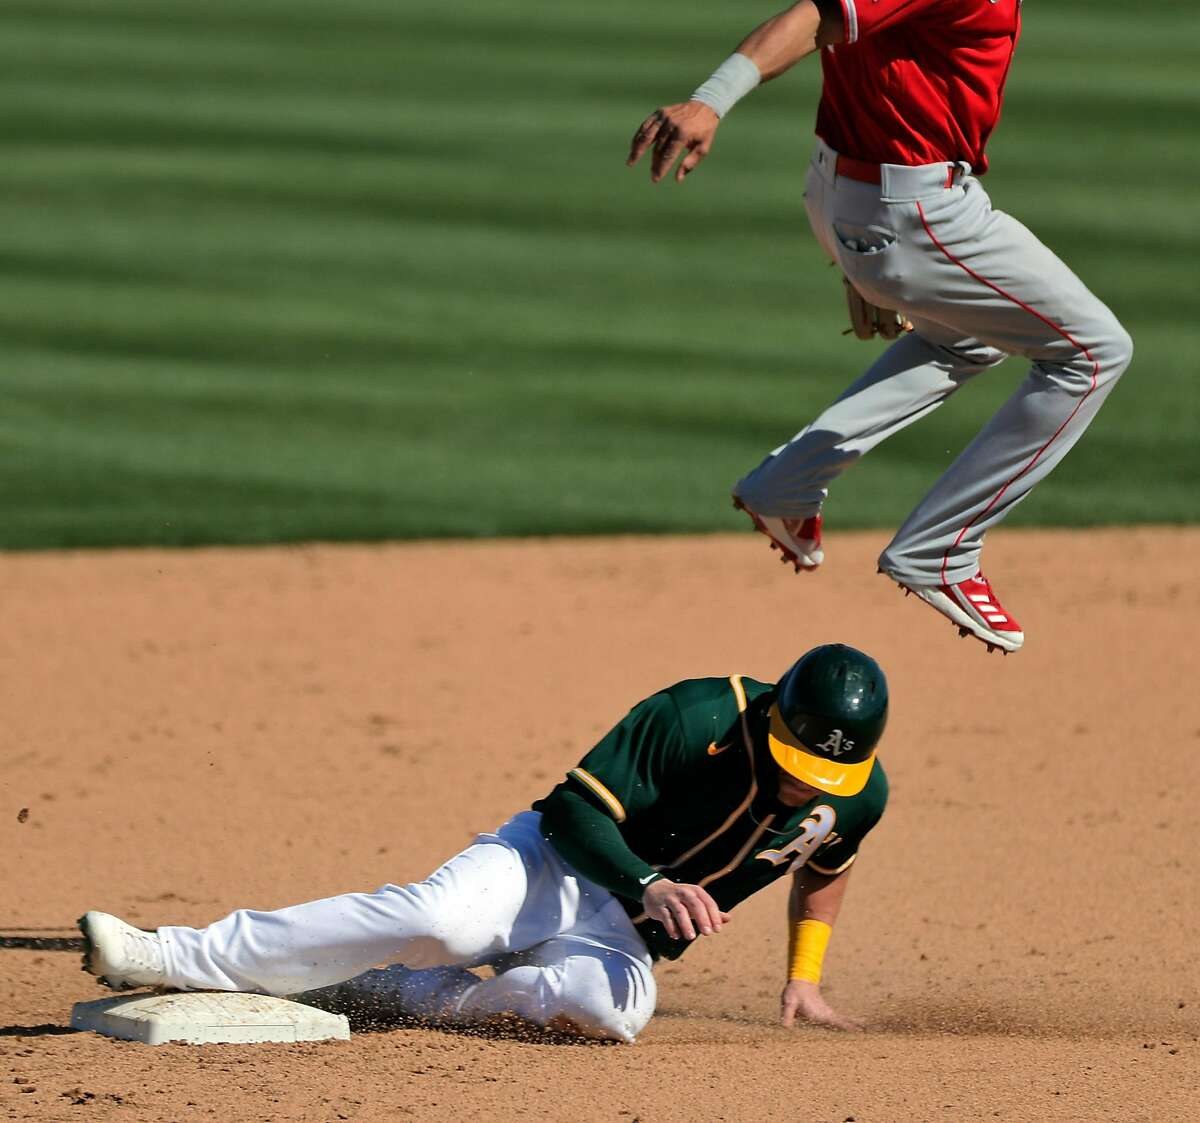 Greg Deichmann (31) ducks under shortstop Jeremiah Jackson (97) as Elvis Andrus (17) hit into a double play in the fourth inning as the Oakland Athletics played the Los Angeles Angels at Hohokam Stadium in Mesa, Ariz., on Friday, March 5, 2021.